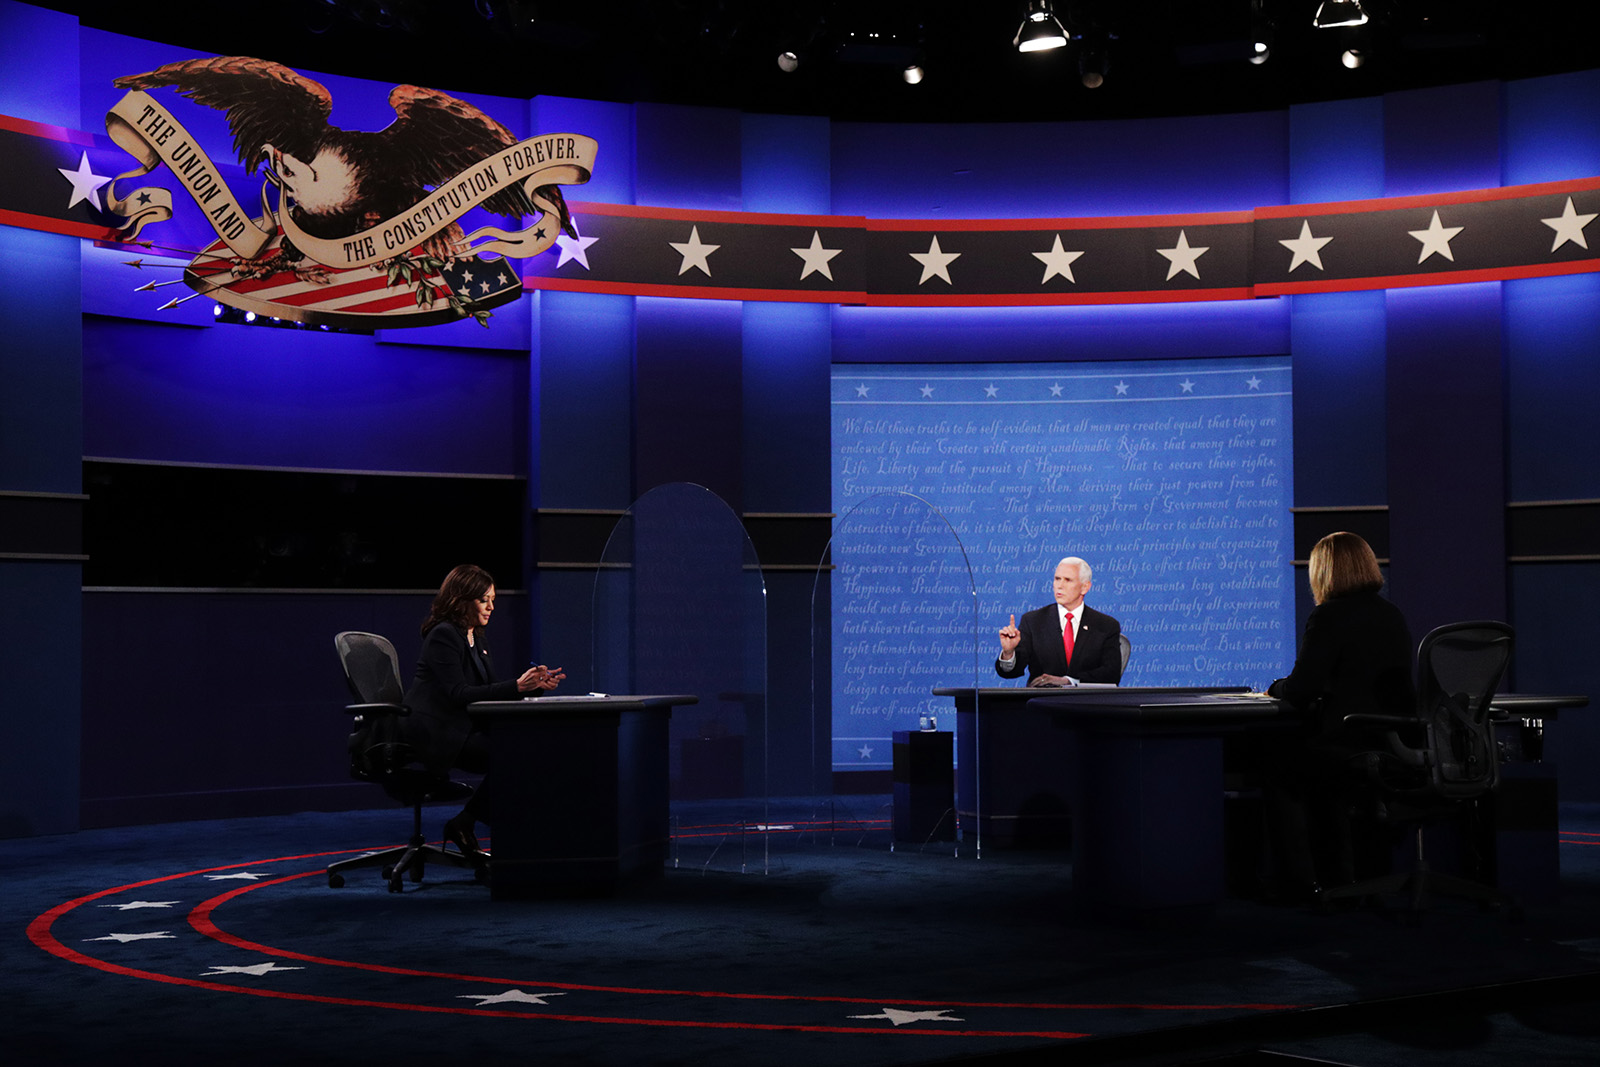 Democratic vice presidential nominee Sen. Kamala Harris and Vice President Mike Pence participate in the vice presidential debate moderated by Washington Bureau Chief for USA Today Susan Page in Salt Lake City on October 7.